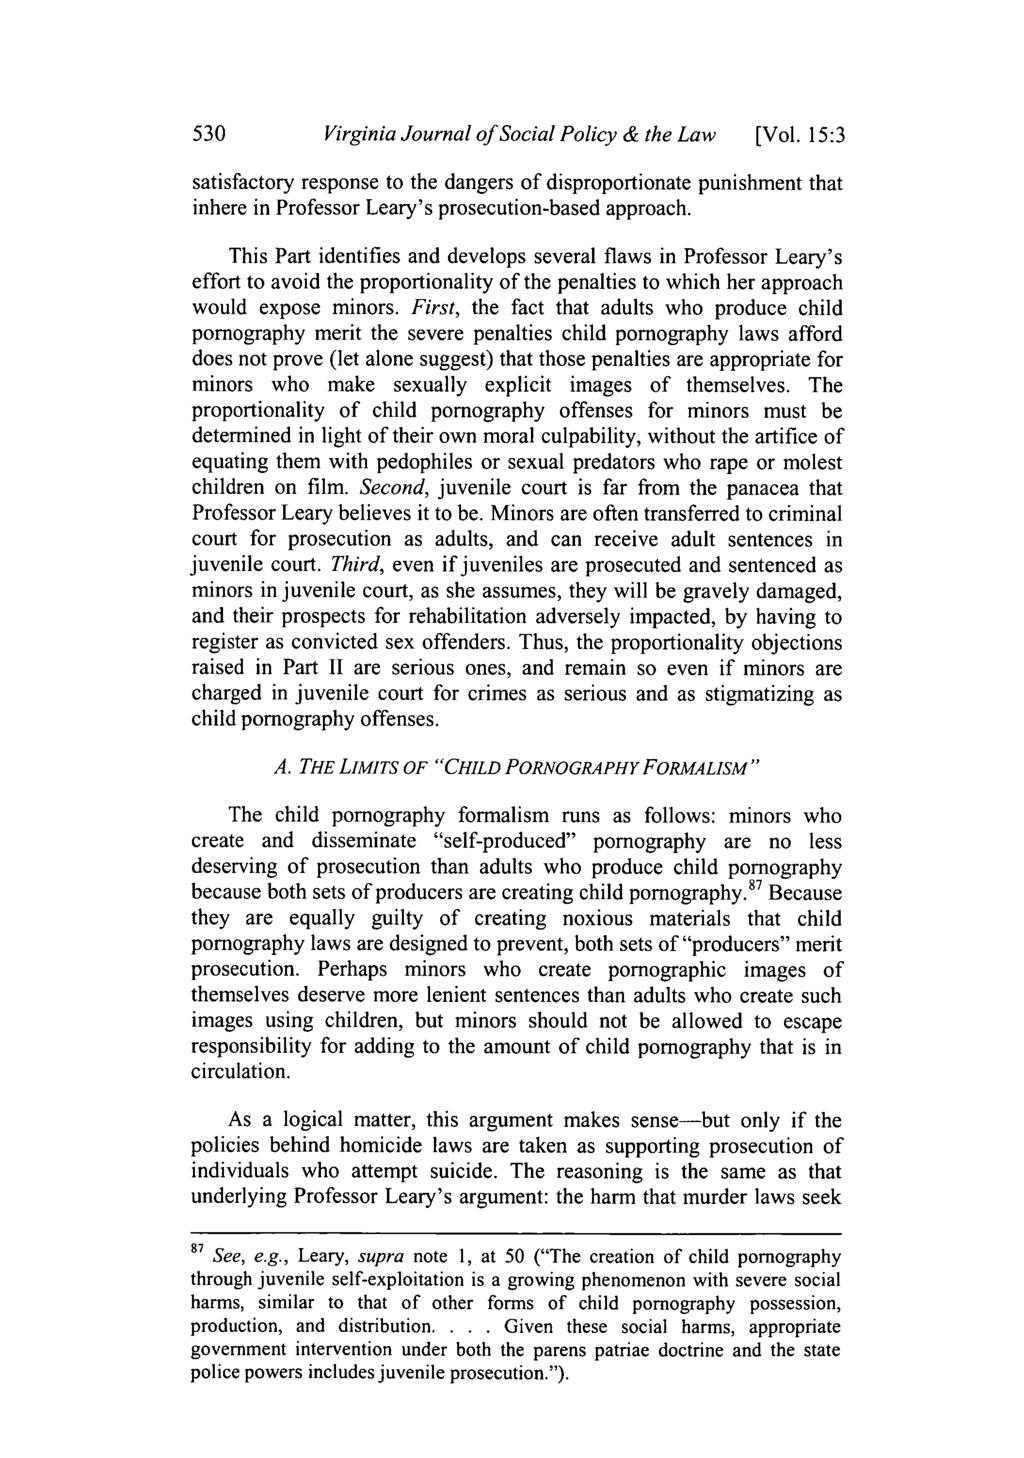 Virginia Journal of Social Policy & the Law [Vol. 15:3 satisfactory response to the dangers of disproportionate punishment that inhere in Professor Leary's prosecution-based approach.